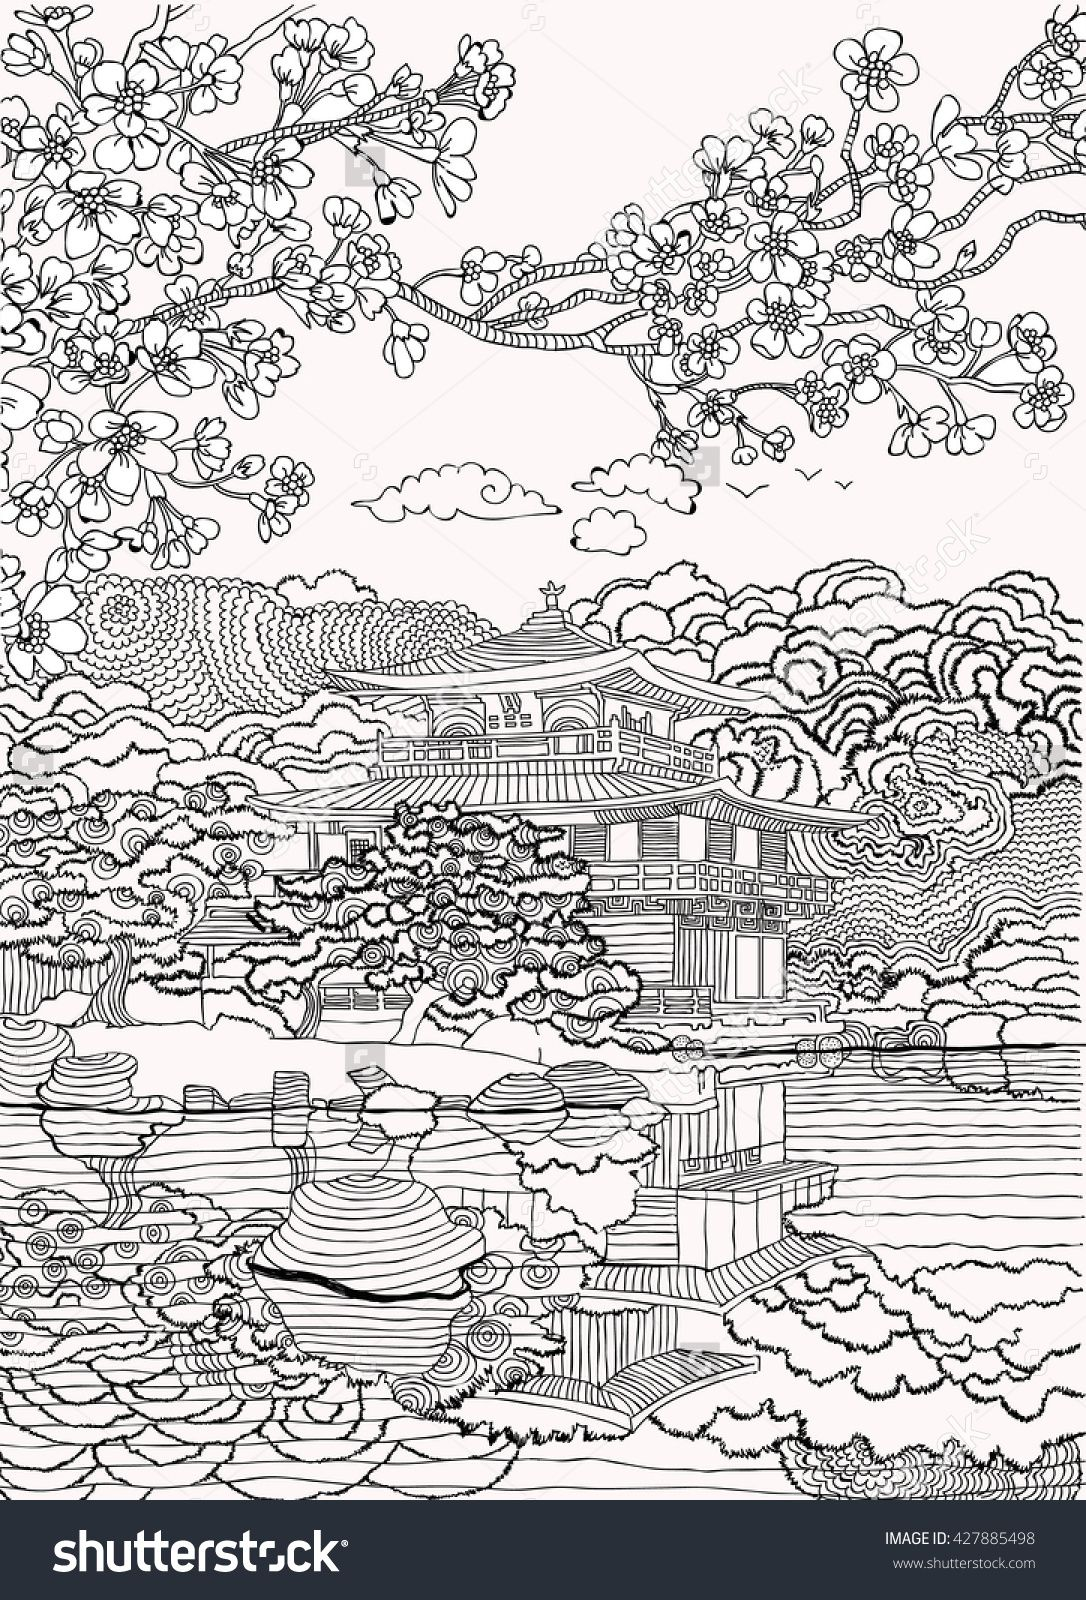 Japan Coloring Pages Shutterstock 427885498 Coloring Pages